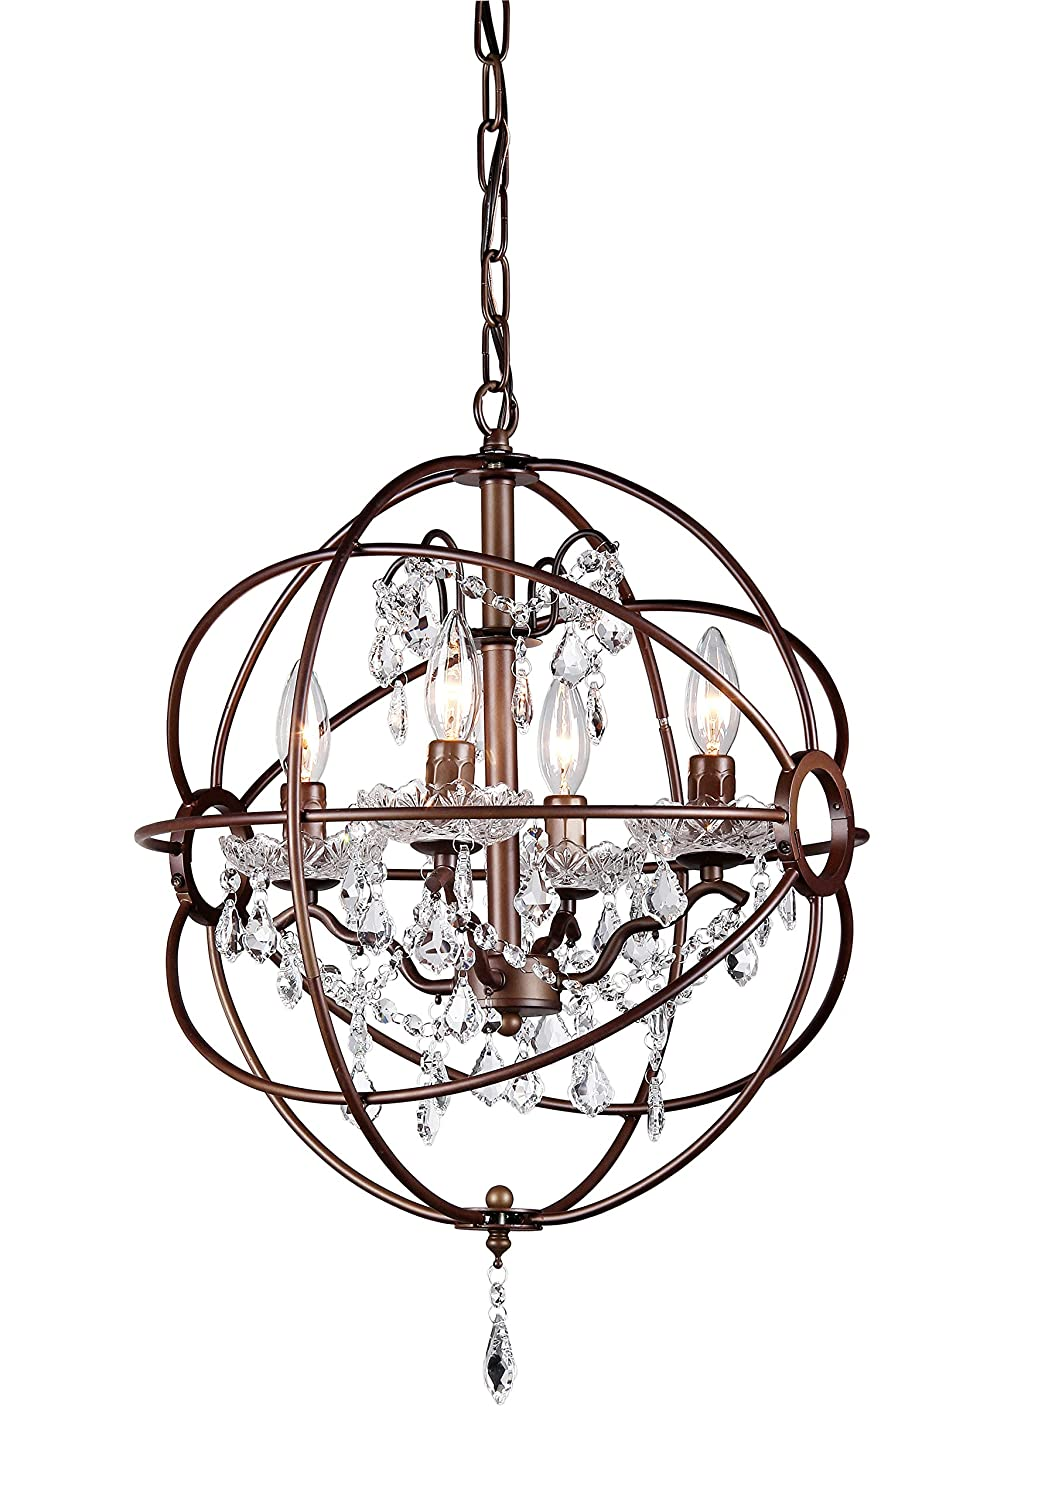 Whse of Tiffany RL8049-32AB Edwards 32-Inch Chandelier, Antique Bronze - -  Amazon.com - Whse Of Tiffany RL8049-32AB Edwards 32-Inch Chandelier, Antique